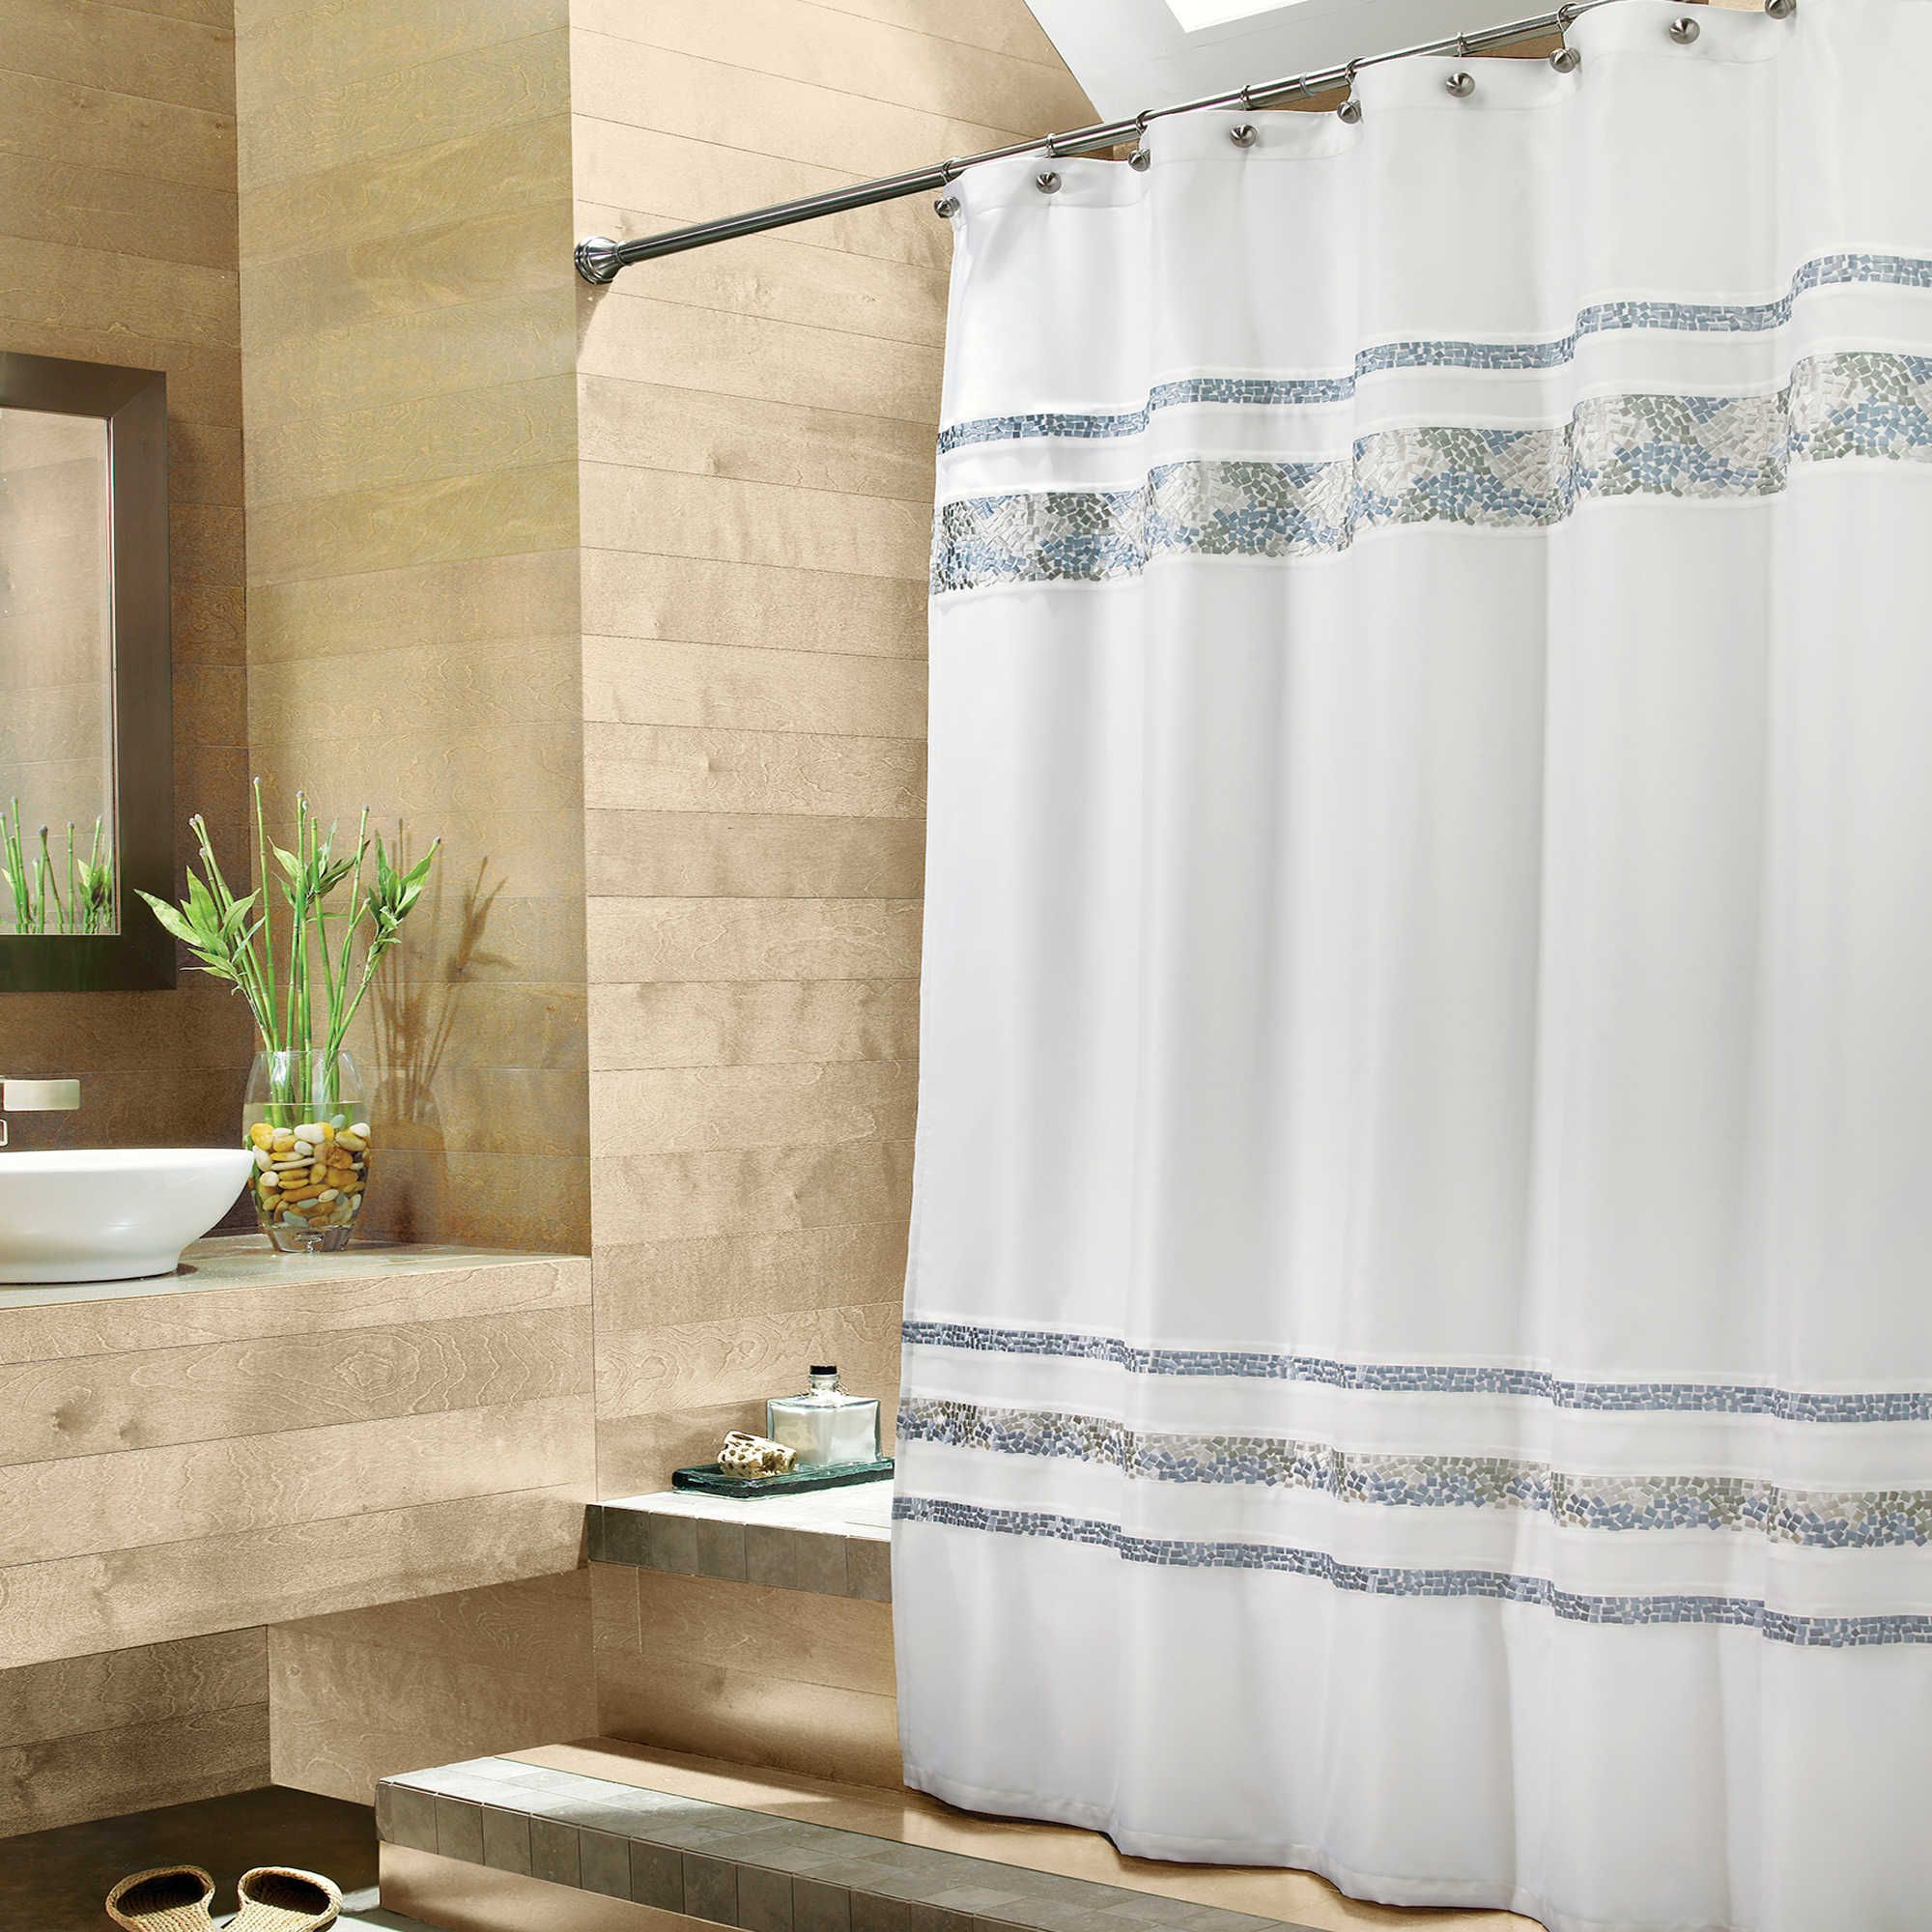 Croscill Reg Spa Tile Fabric Shower Curtain Spa Tile Fabric